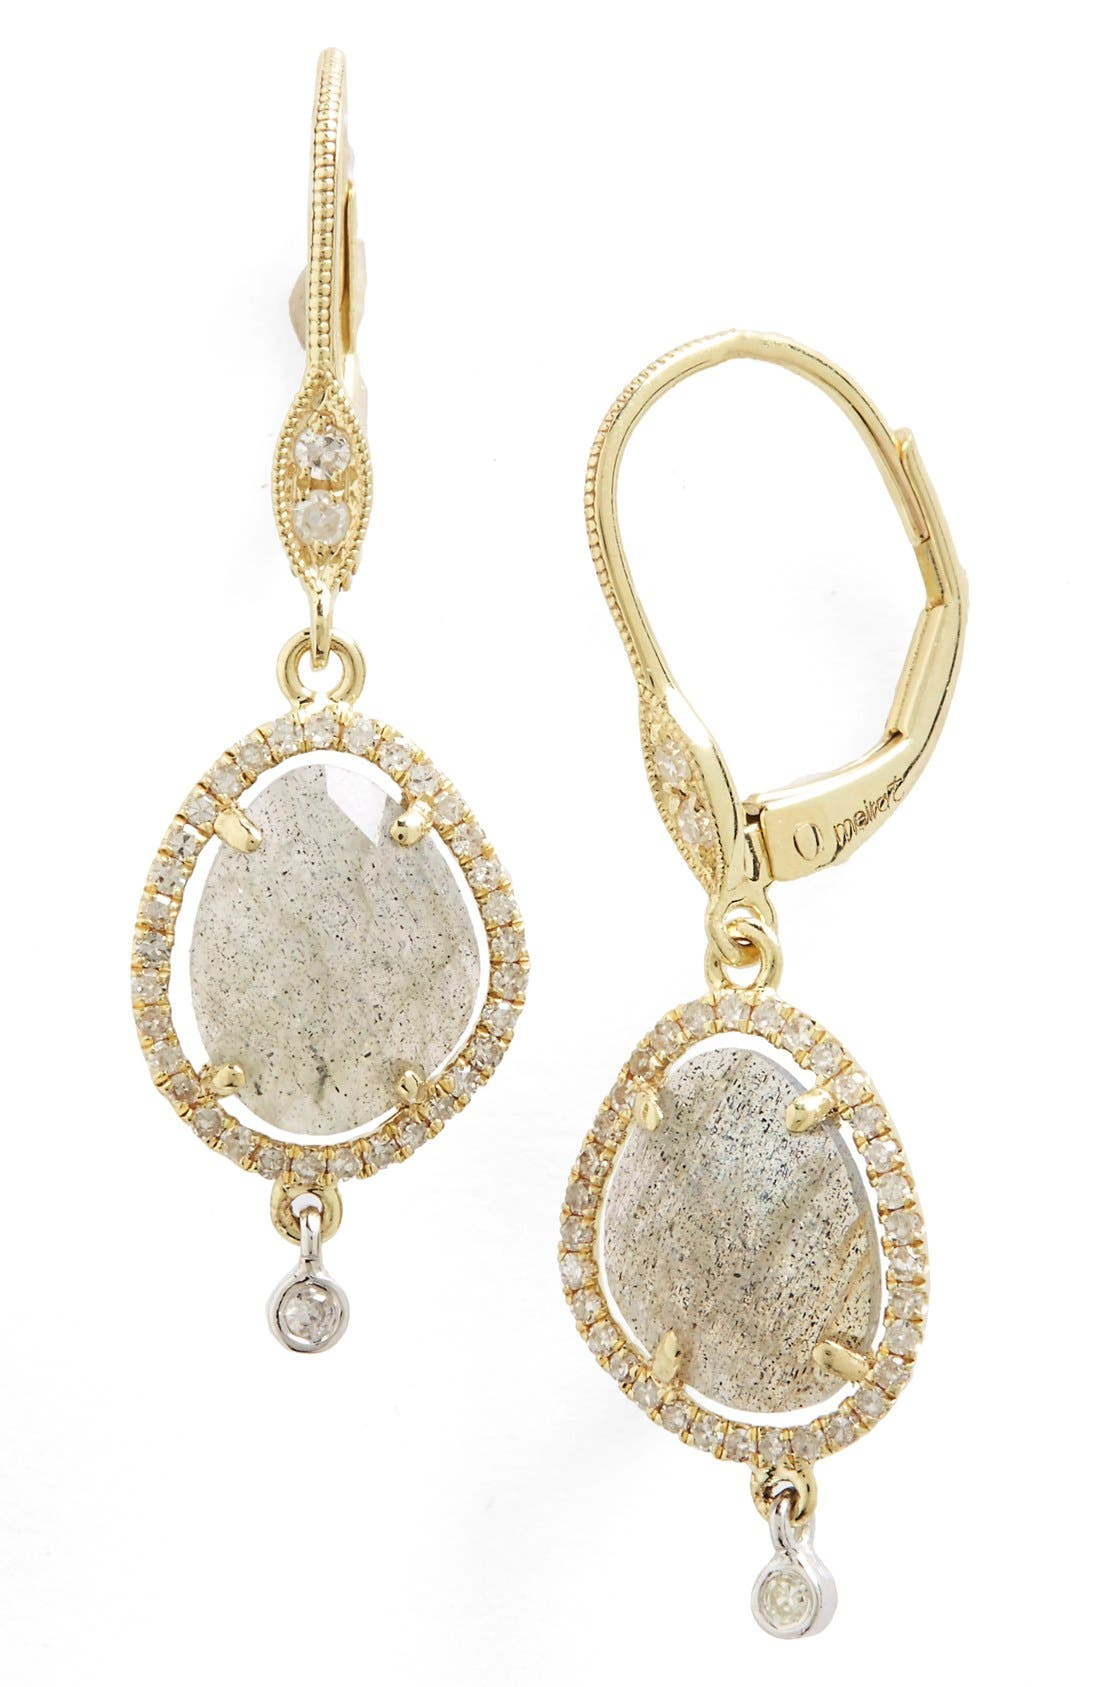 Diamond & Semiprecious Stone Drop Earrings,                             Main thumbnail 1, color,                             030